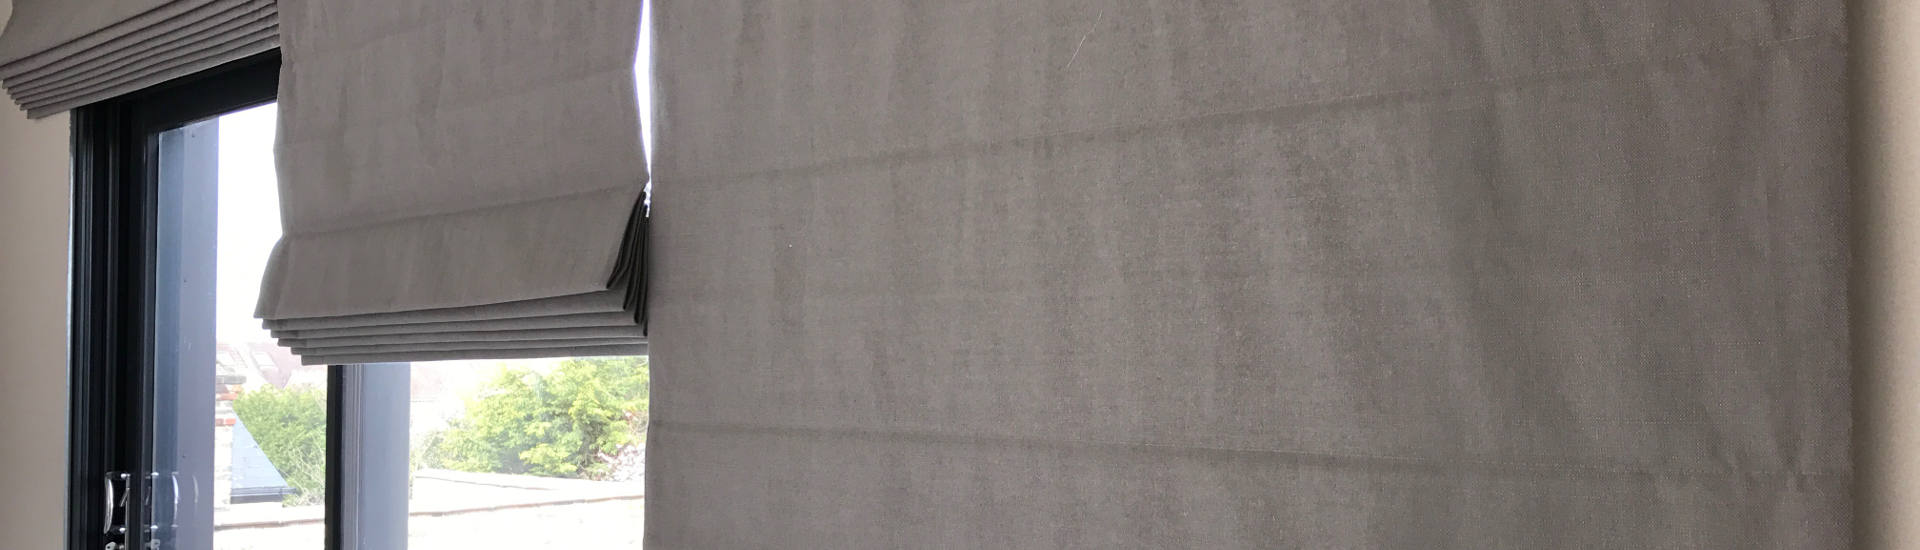 Electric Roman Blinds Header Image